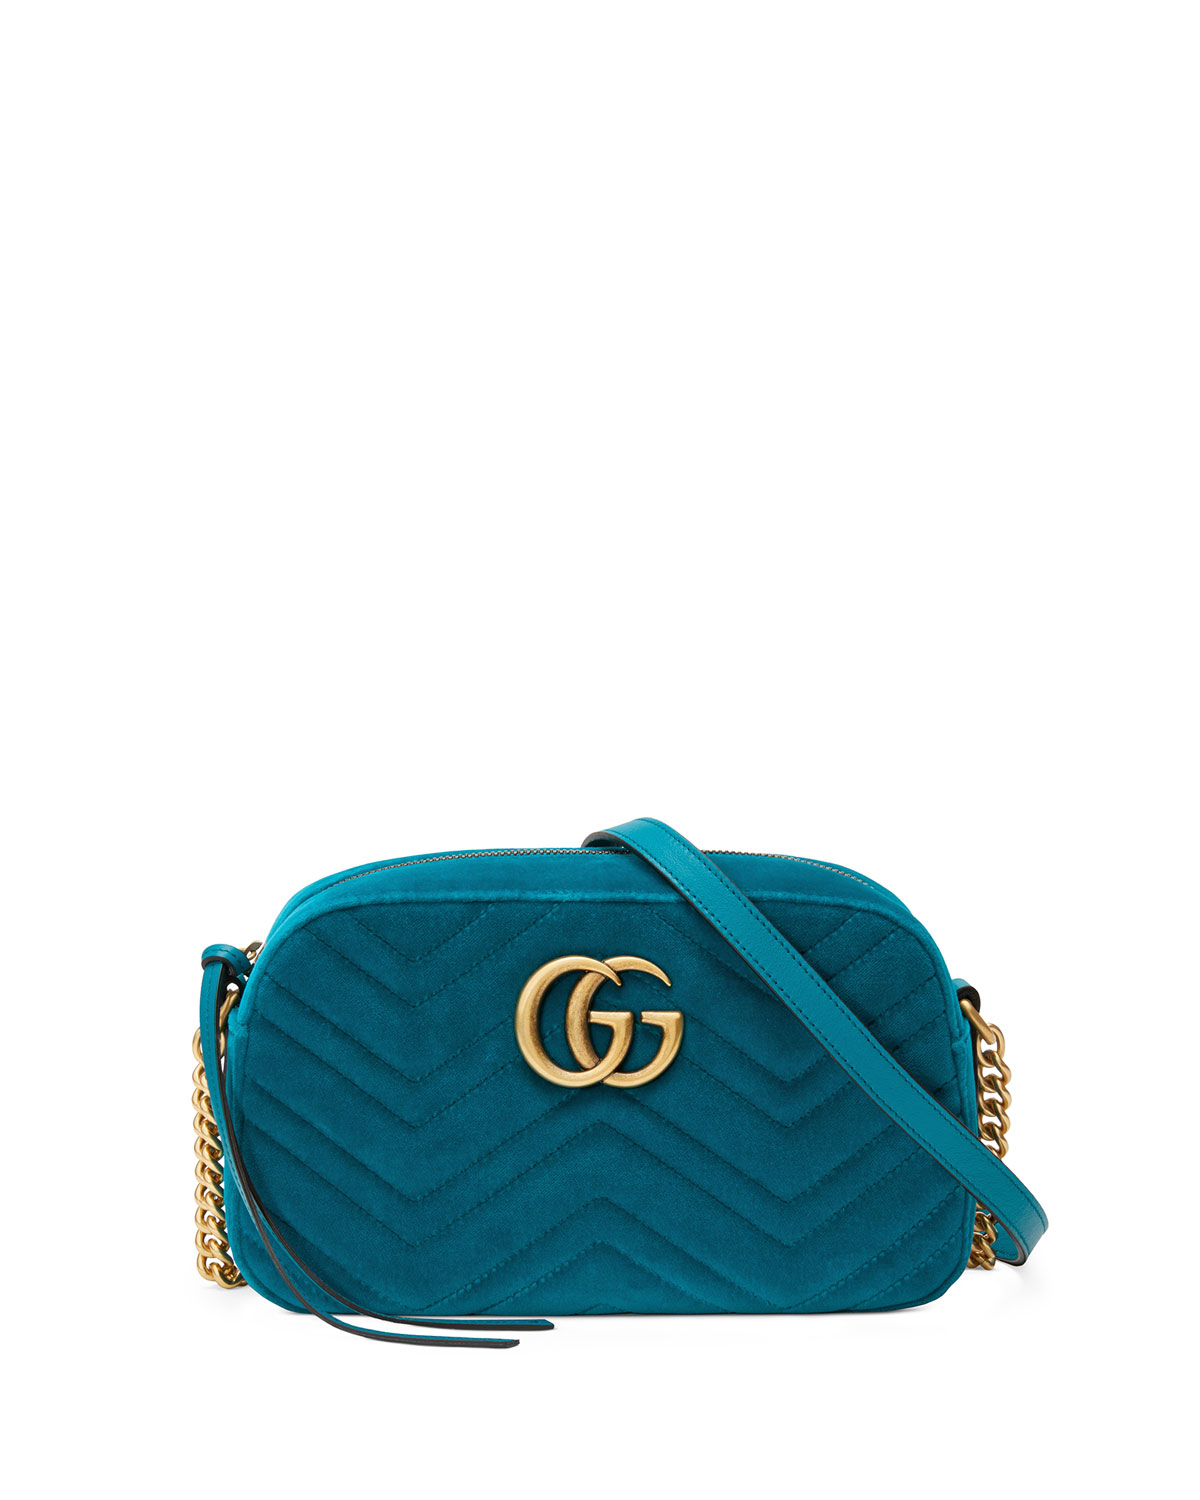 9b8a3a6e35d9 Gucci GG Marmont Small Velvet Camera Bag | Neiman Marcus